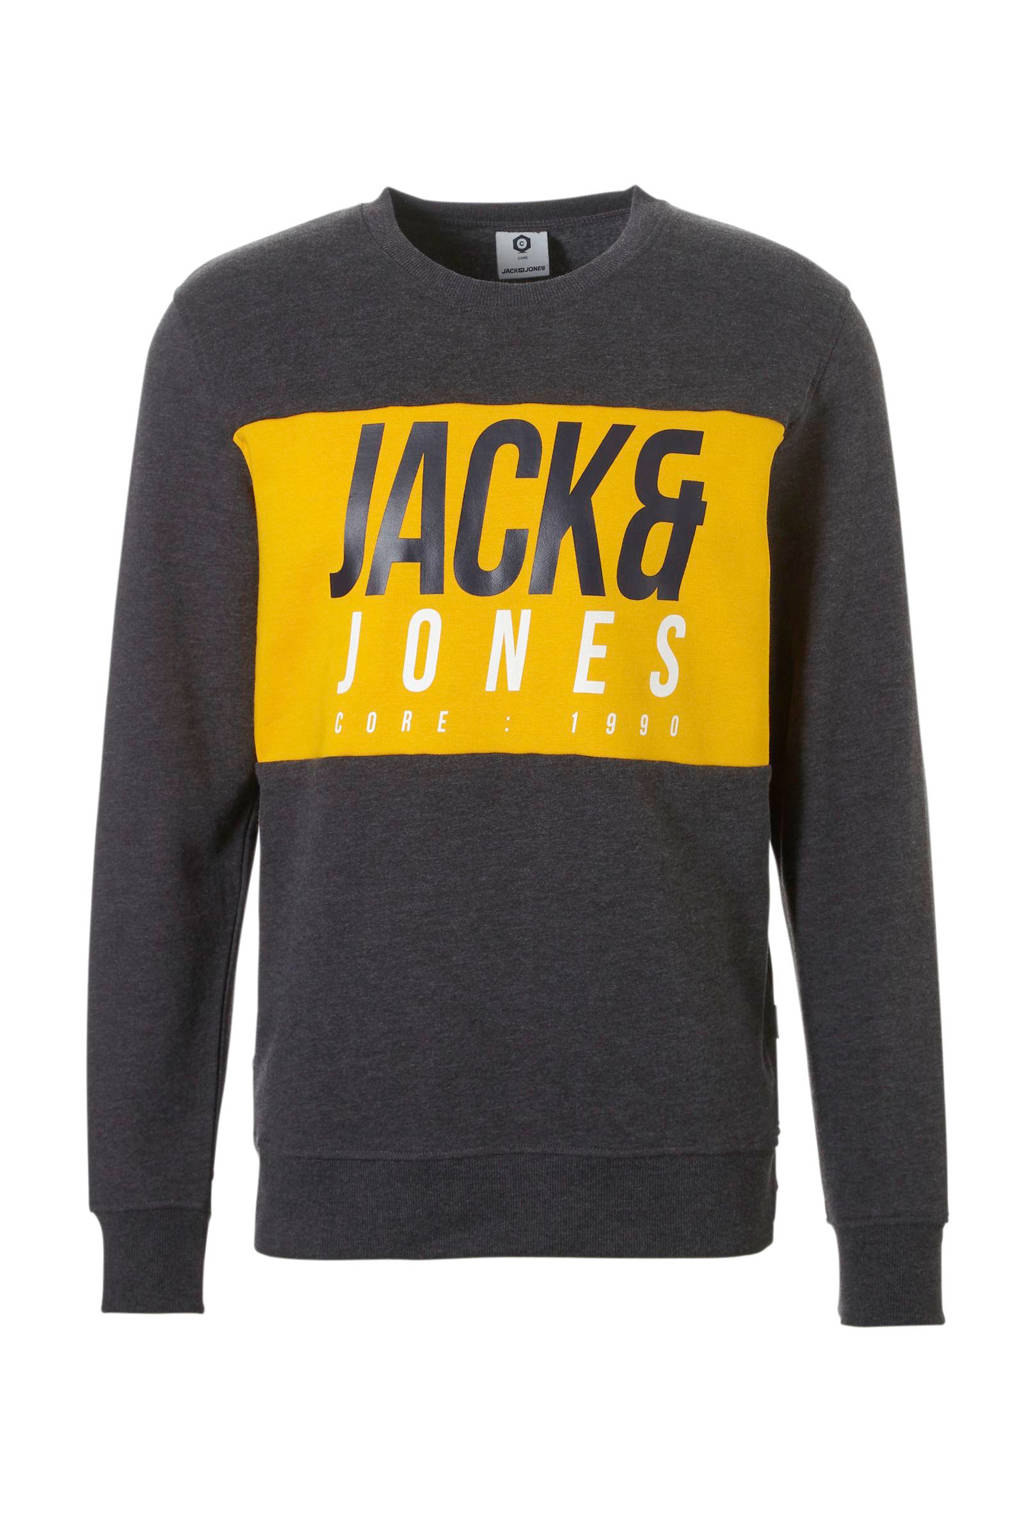 Jack & Jones Core sweater, Grijs melange